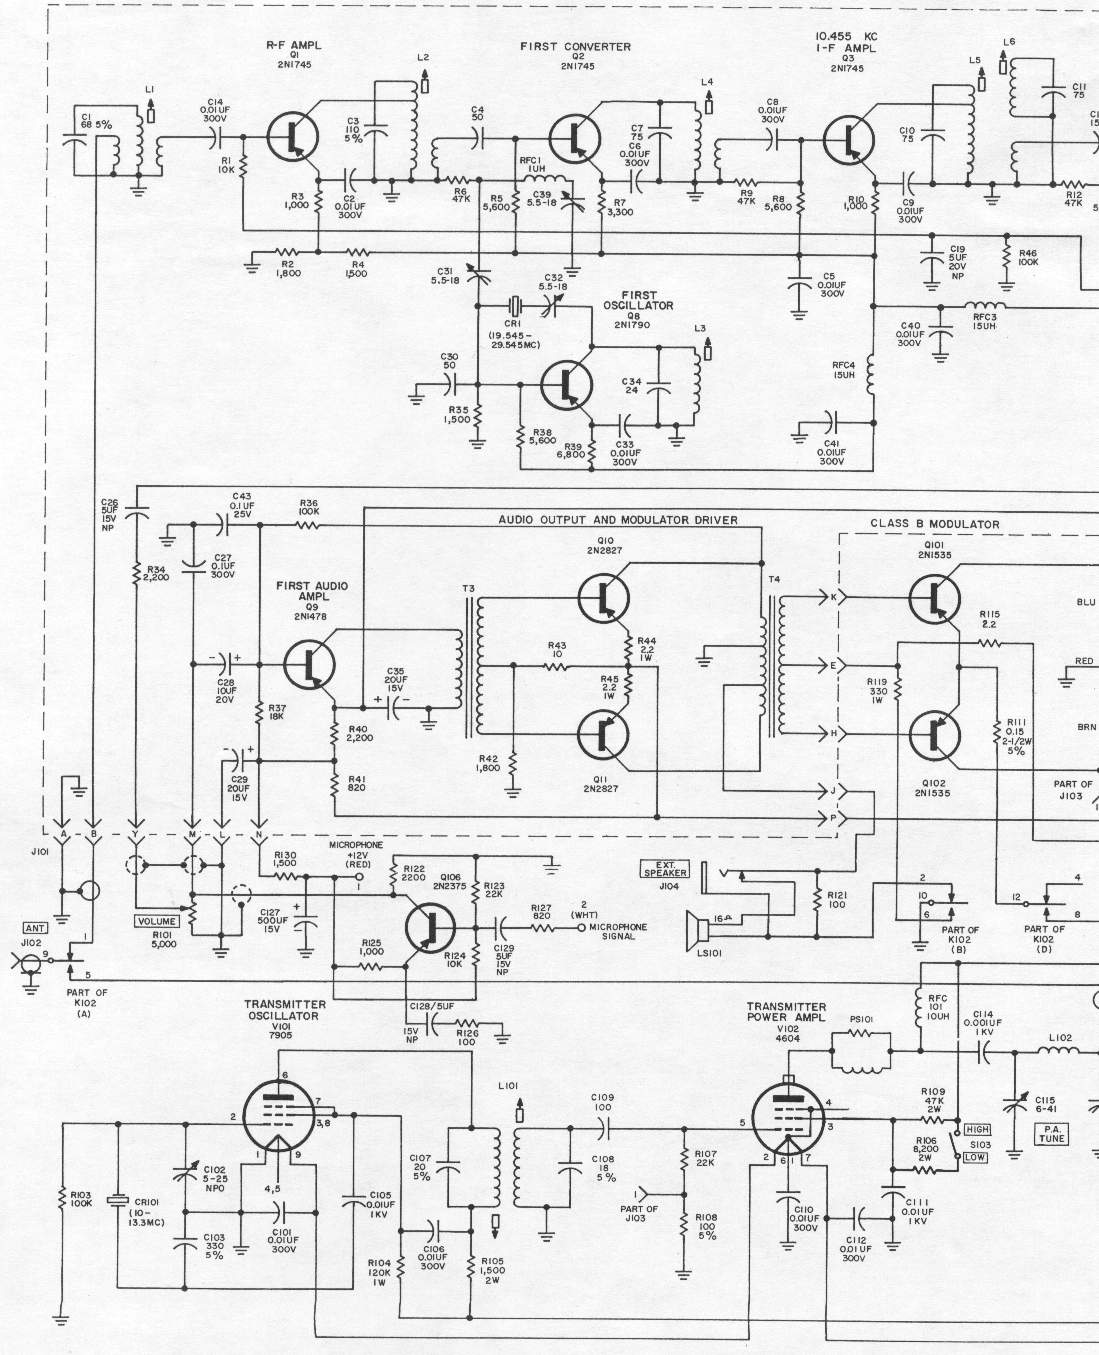 Bazooka El Series Wiring Diagram Power Dvd Player Download Softonic Wire Diagramsbazooka Tube Further